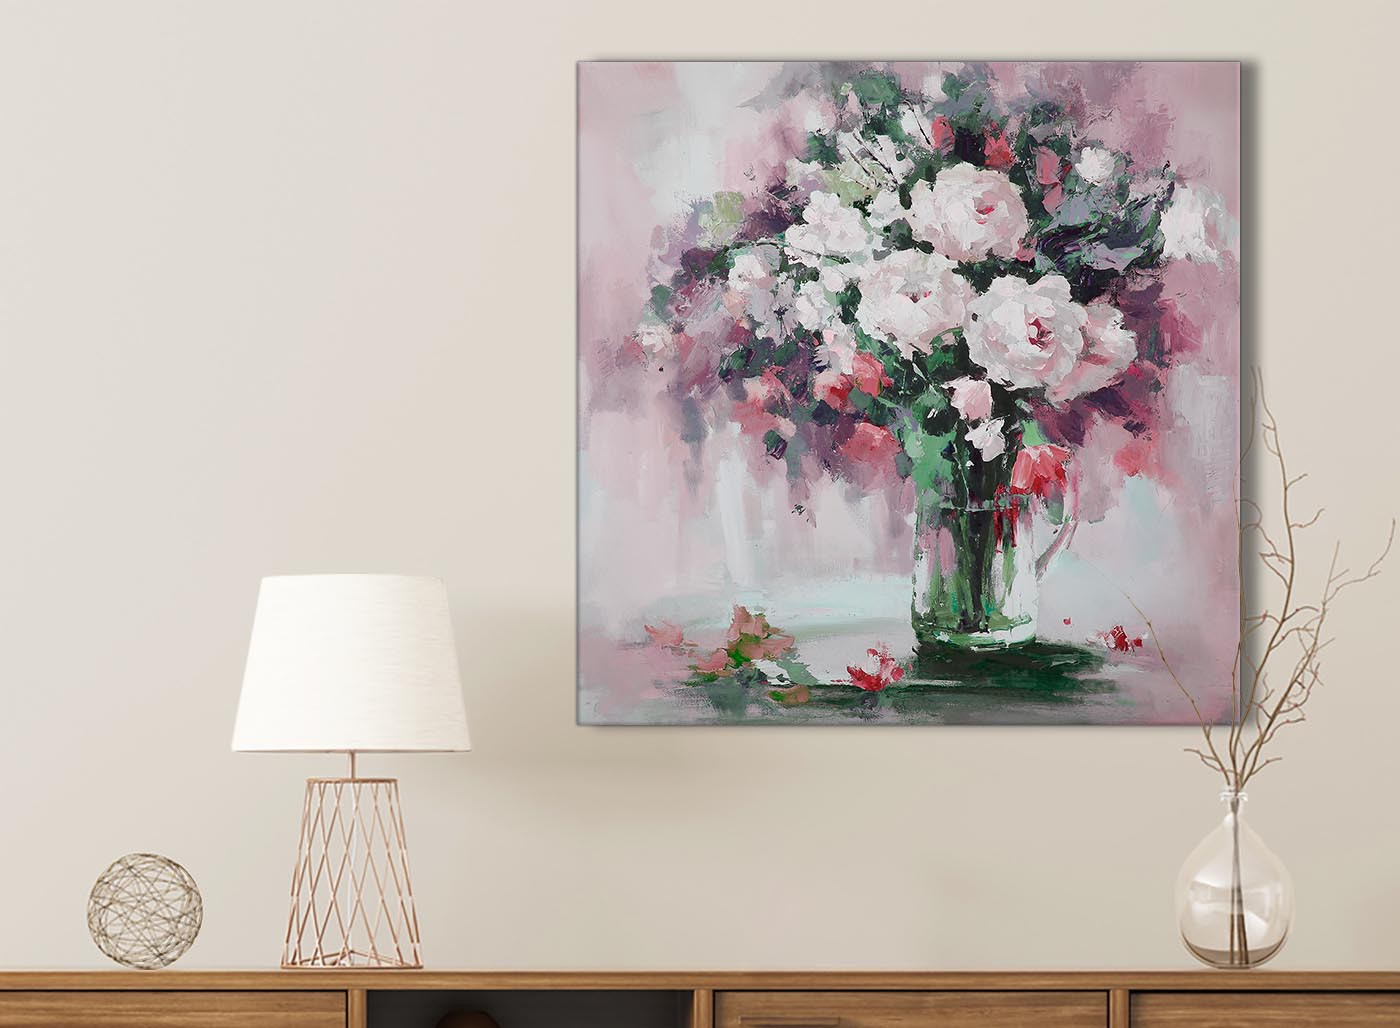 Blush pink flowers painting bathroom canvas pictures accessories item number 1s441s mightylinksfo